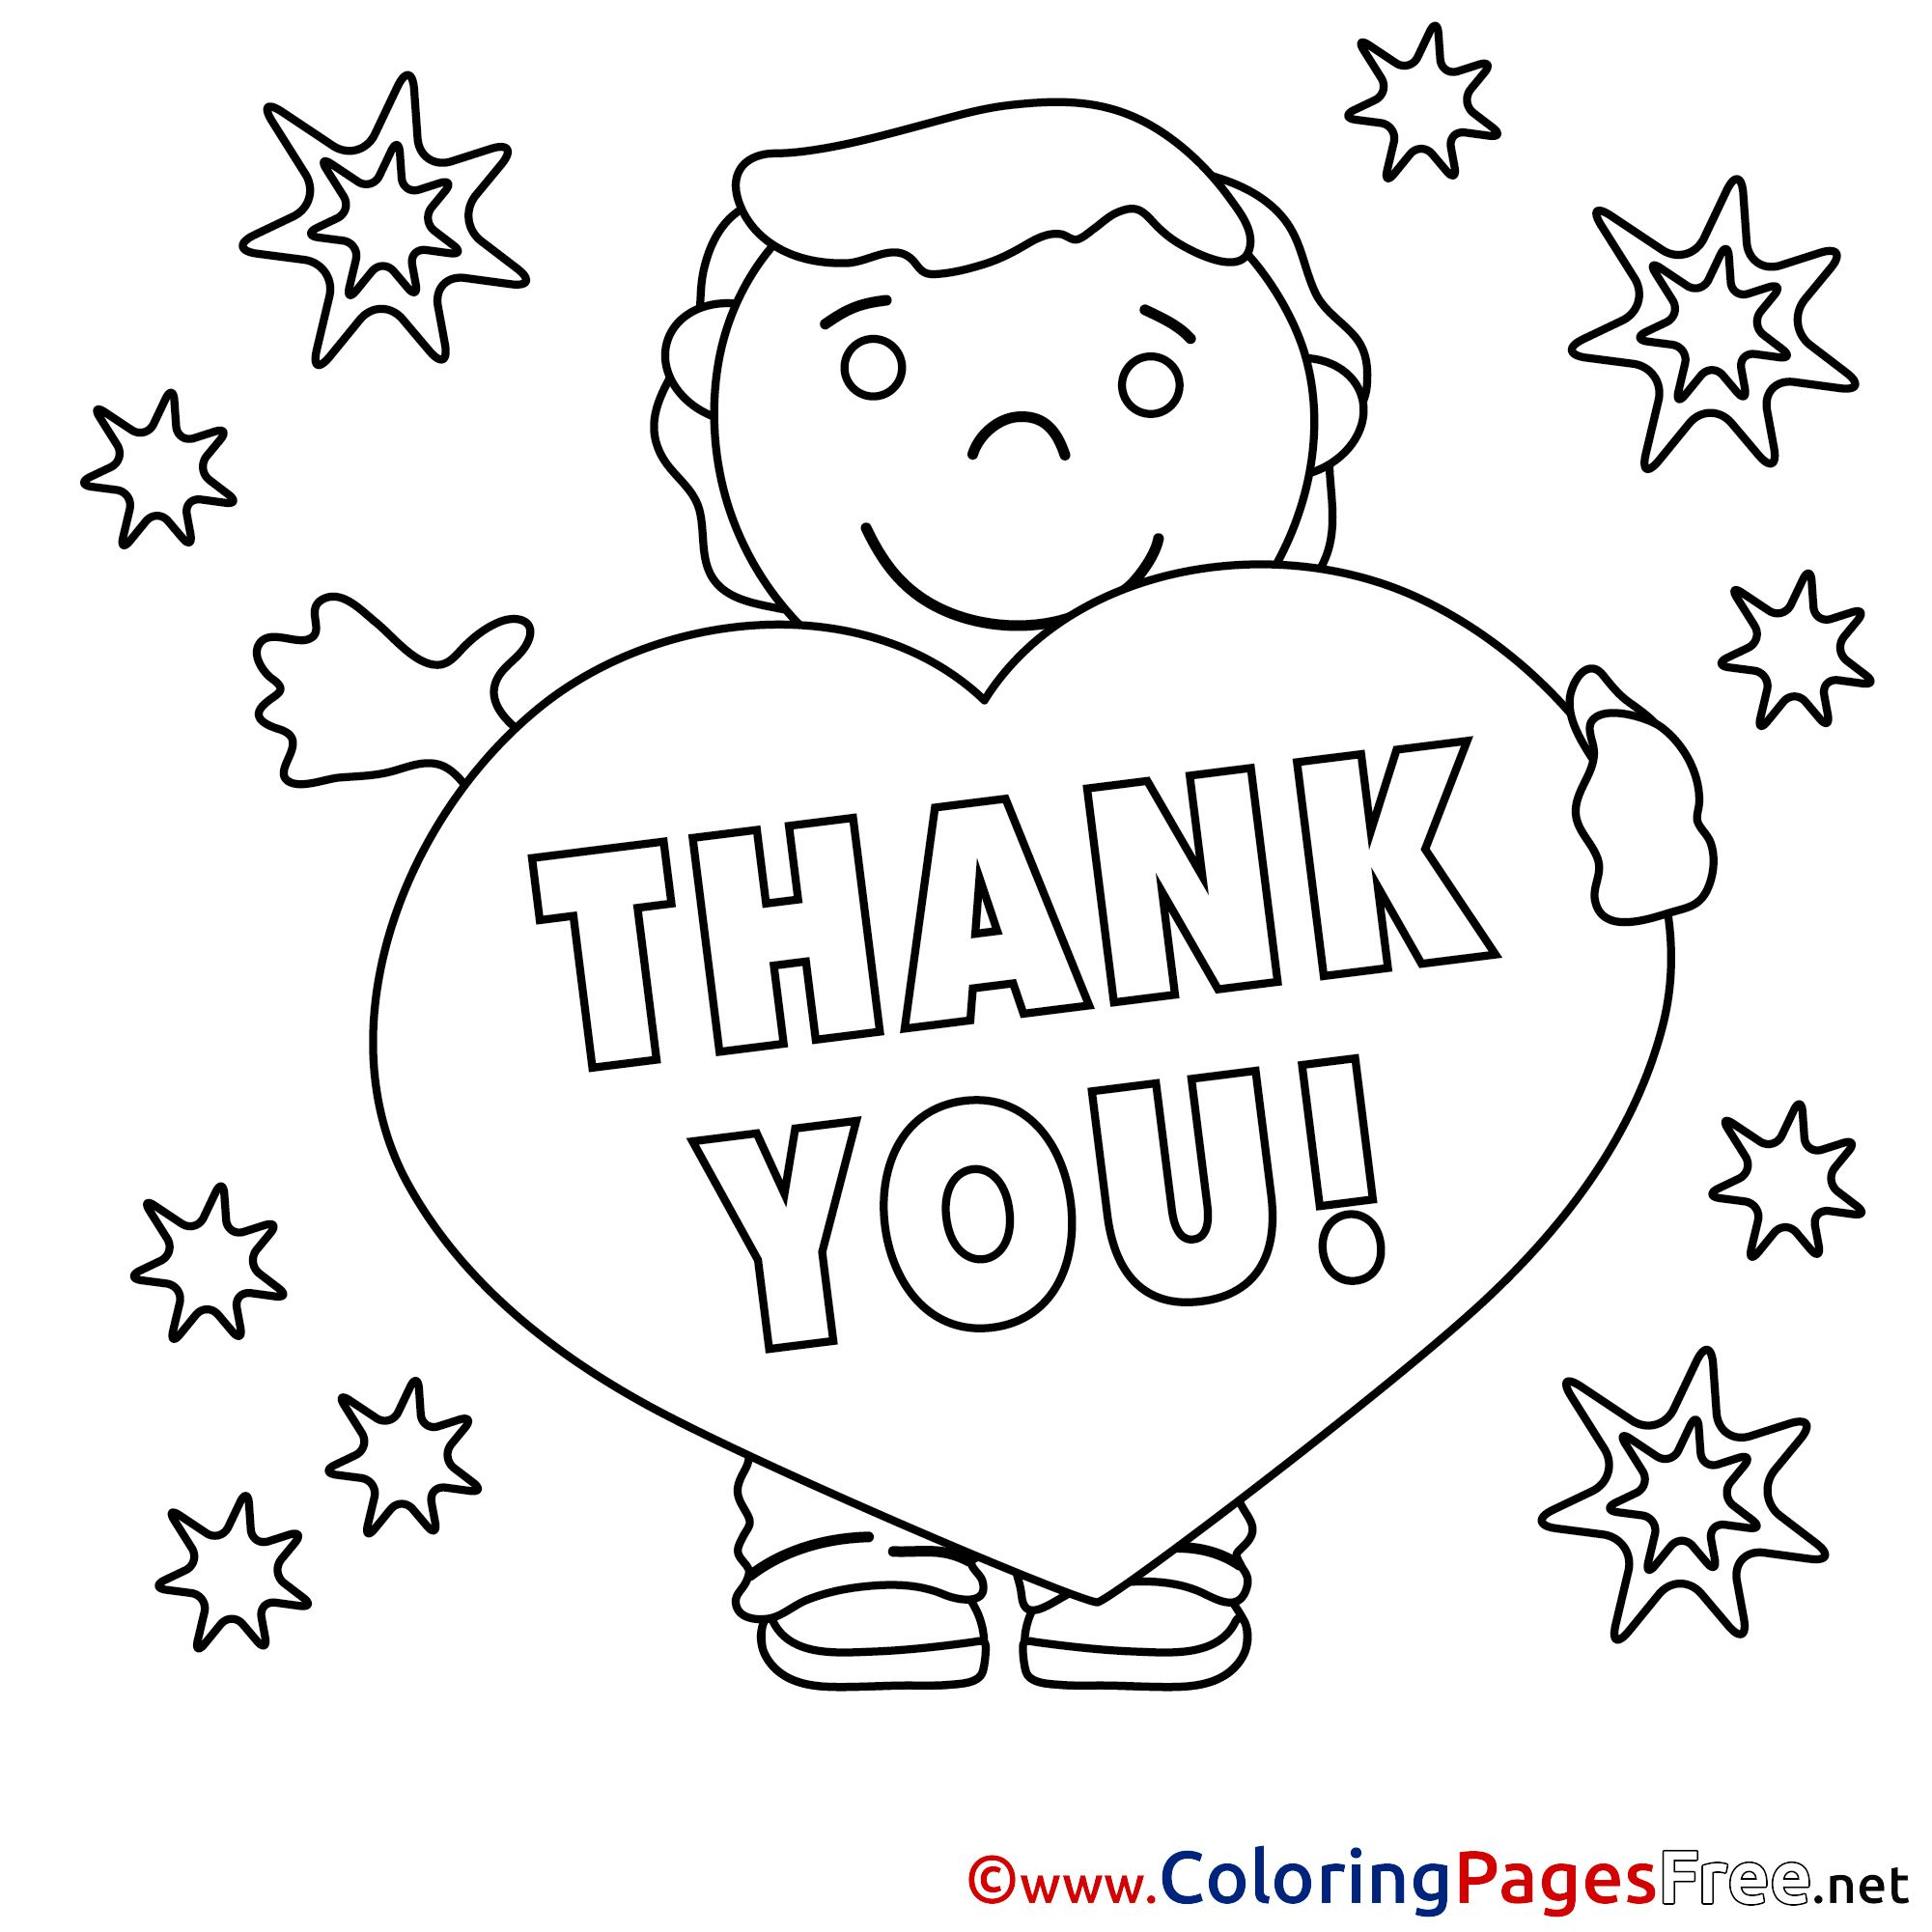 Thank You Coloring Pages Free Boy Stars At Love Coloring Pages Coloring Pages Inspirational Coloring Pages